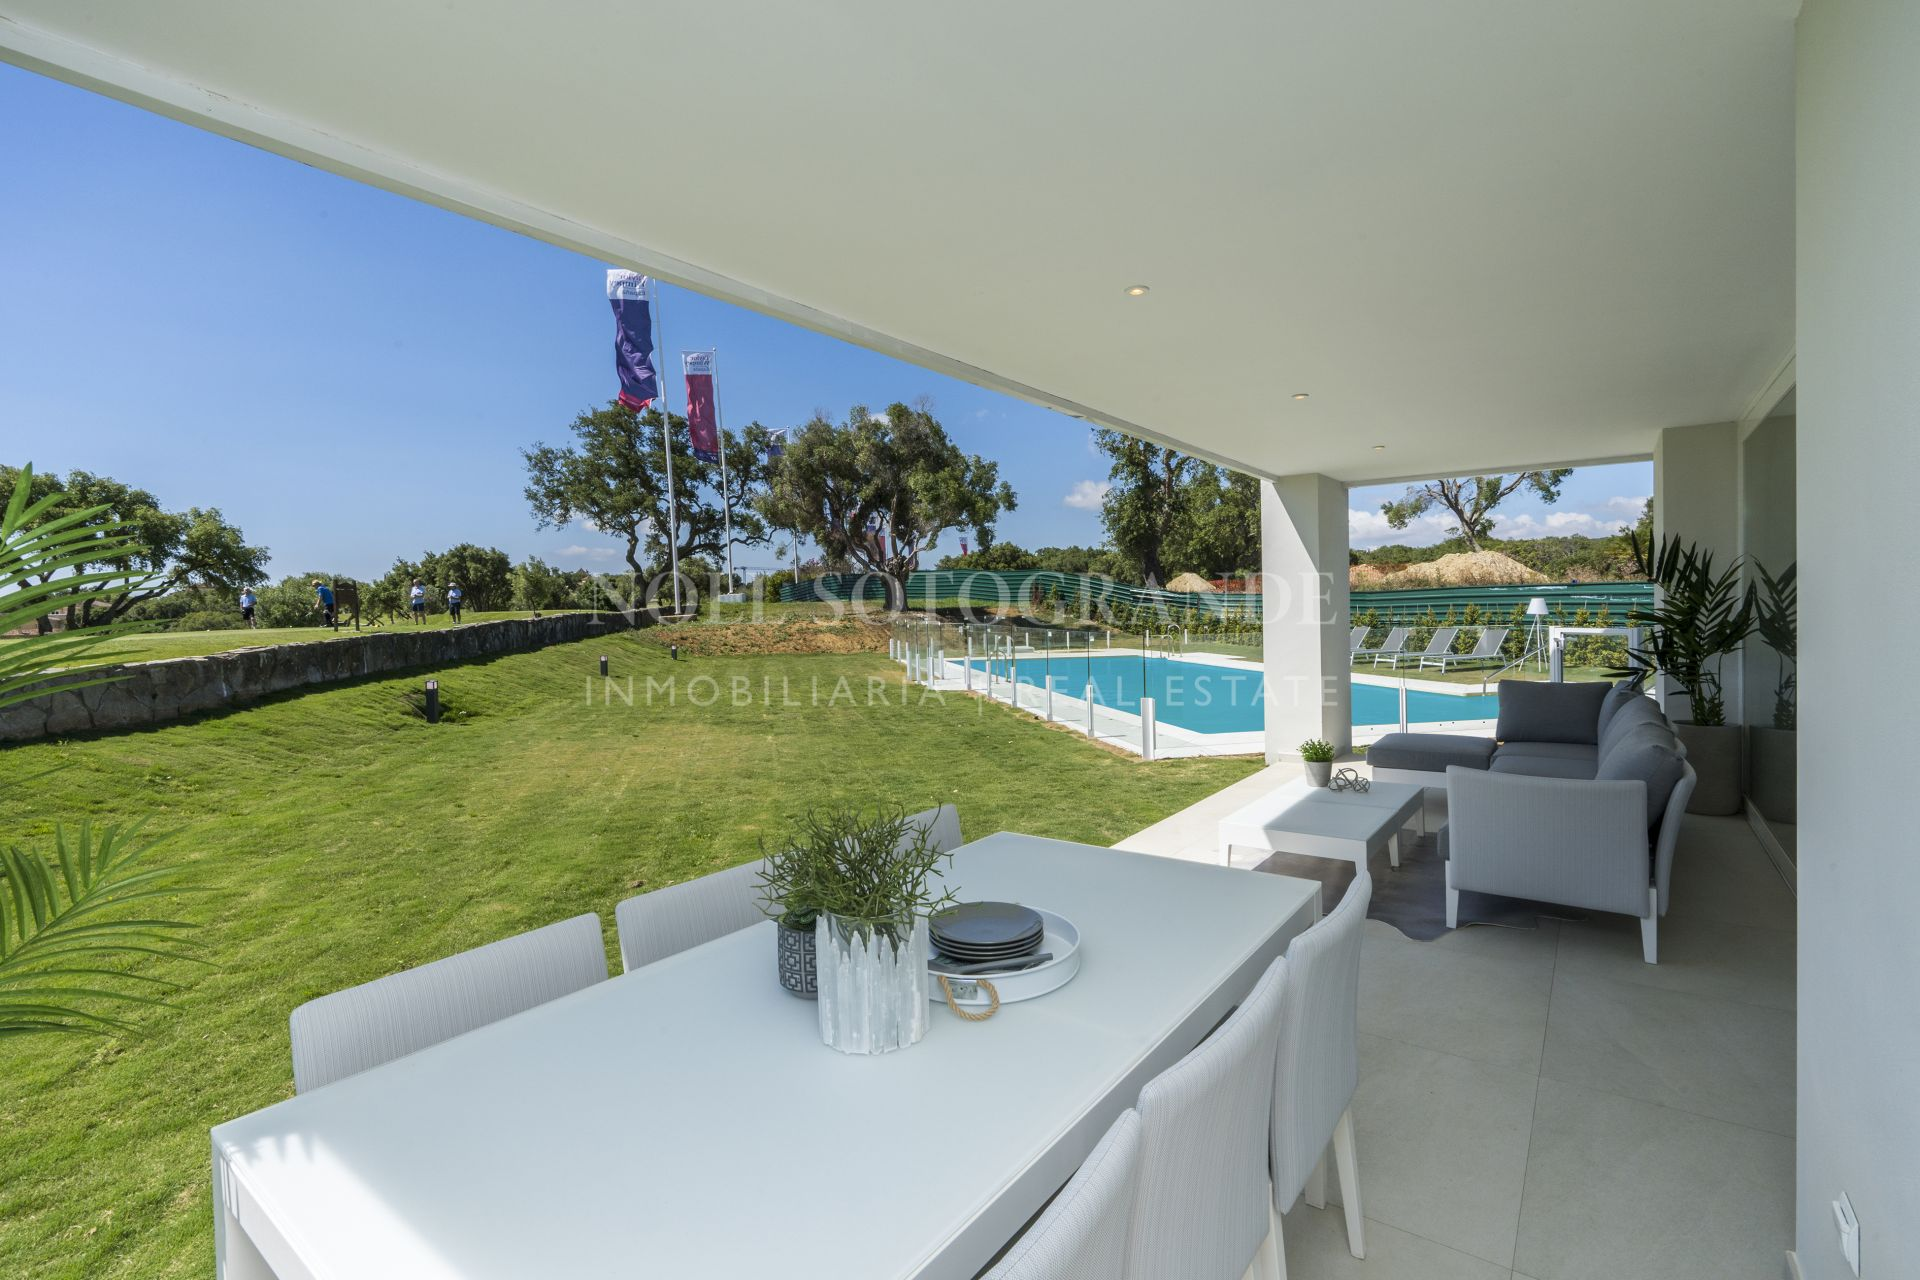 Opportunity to buy an off-plan duplex apartment at San Roque Club